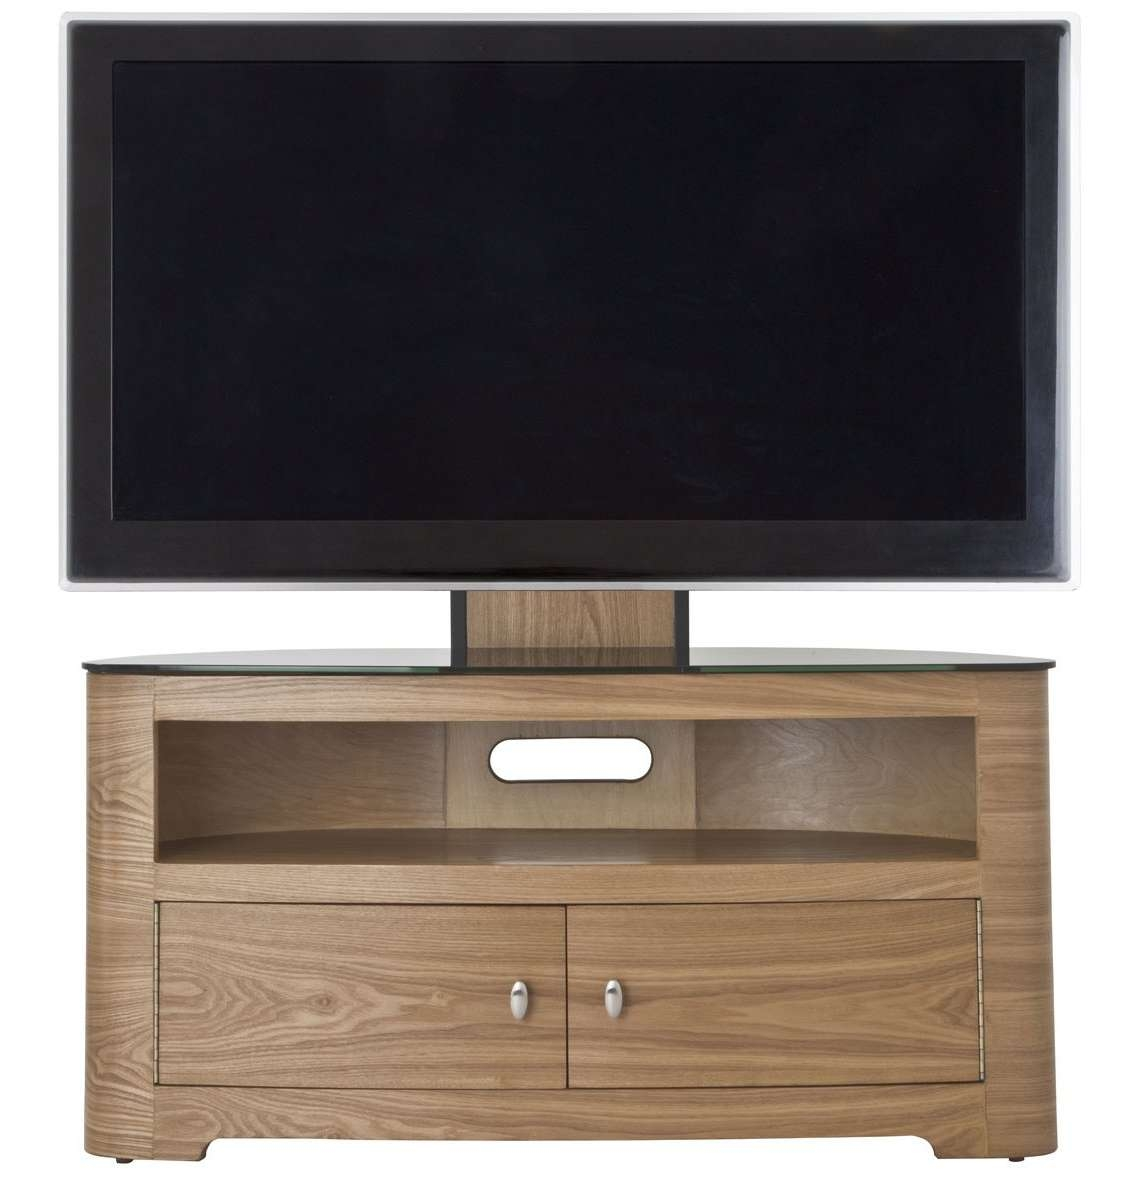 Avf Blenheim Oak Cantilever Tv Stand For Oak Tv Stands (View 2 of 15)